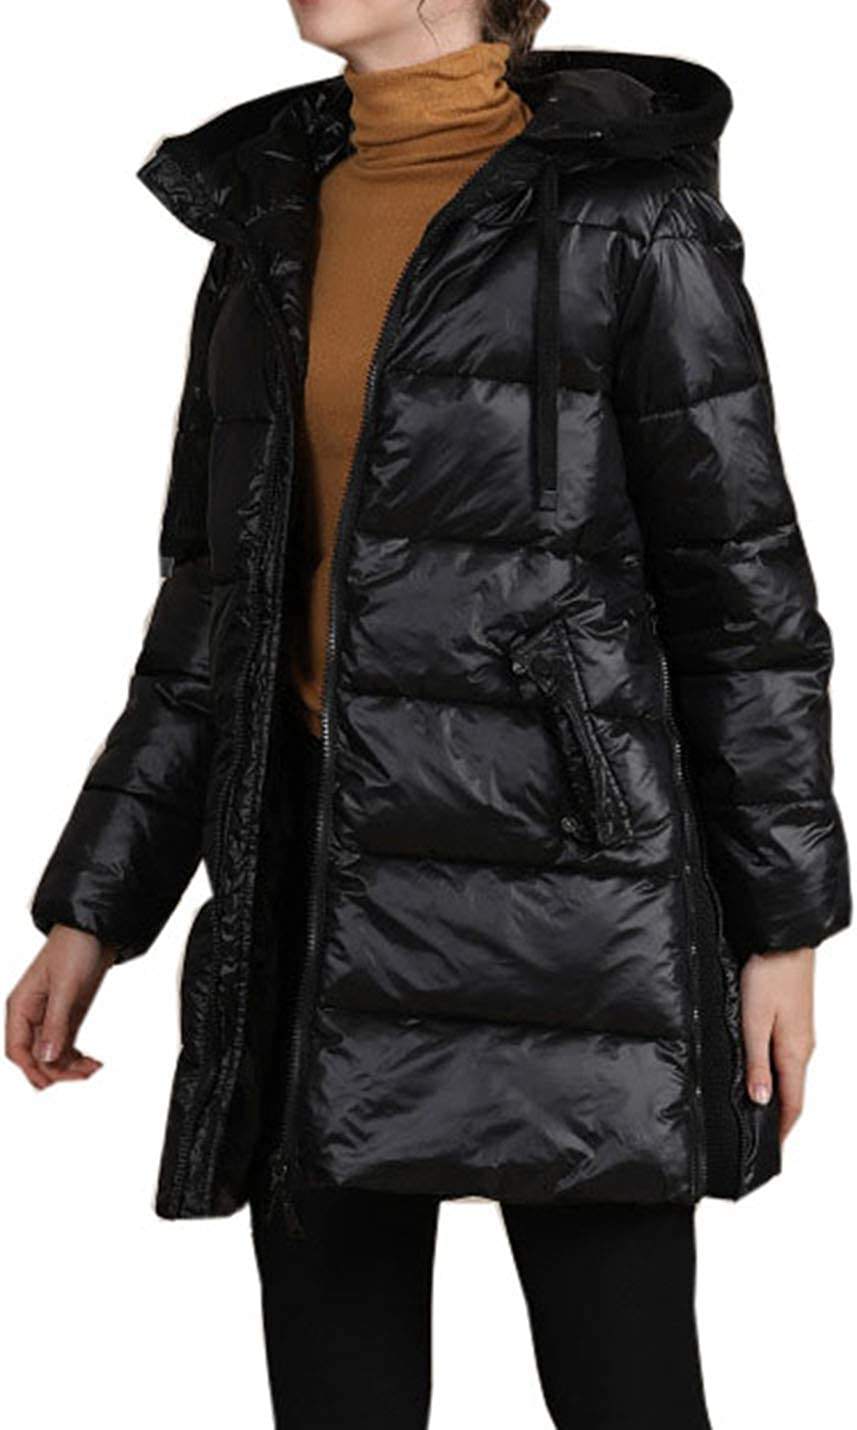 PAODIKUAI Women Winter Warm Mid Long Quilted Puffer Jacket Coat with Removable Hood